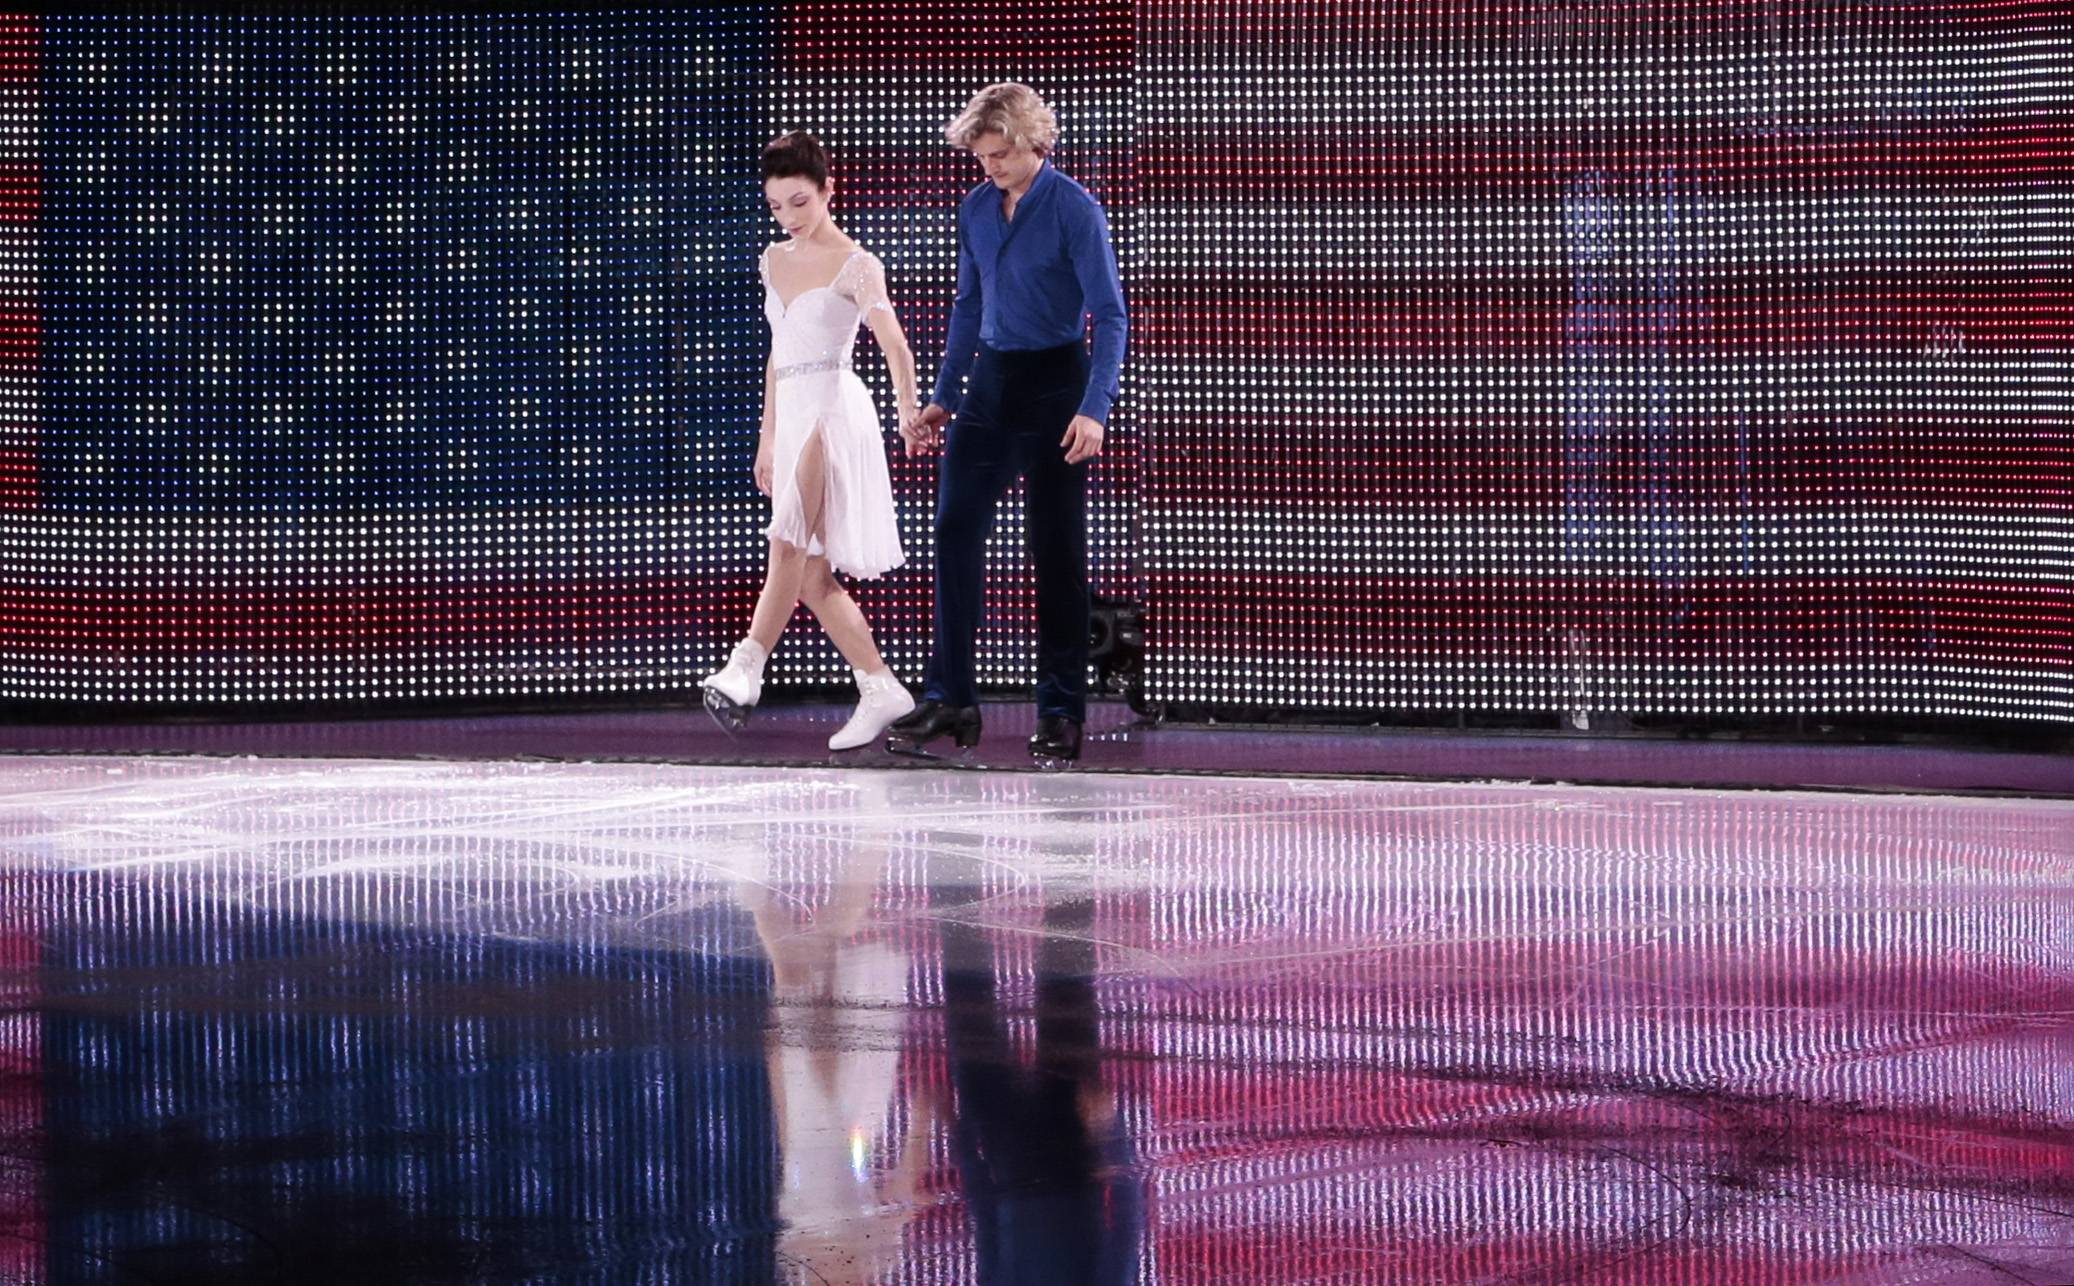 Meryl Davis and Charlie White of the United States step onto the ice before performing in the figure skating exhibition gala at the Iceberg Skating Palace during the 2014 Winter Olympics, Saturday, Feb. 22, 2014, in Sochi, Russia.